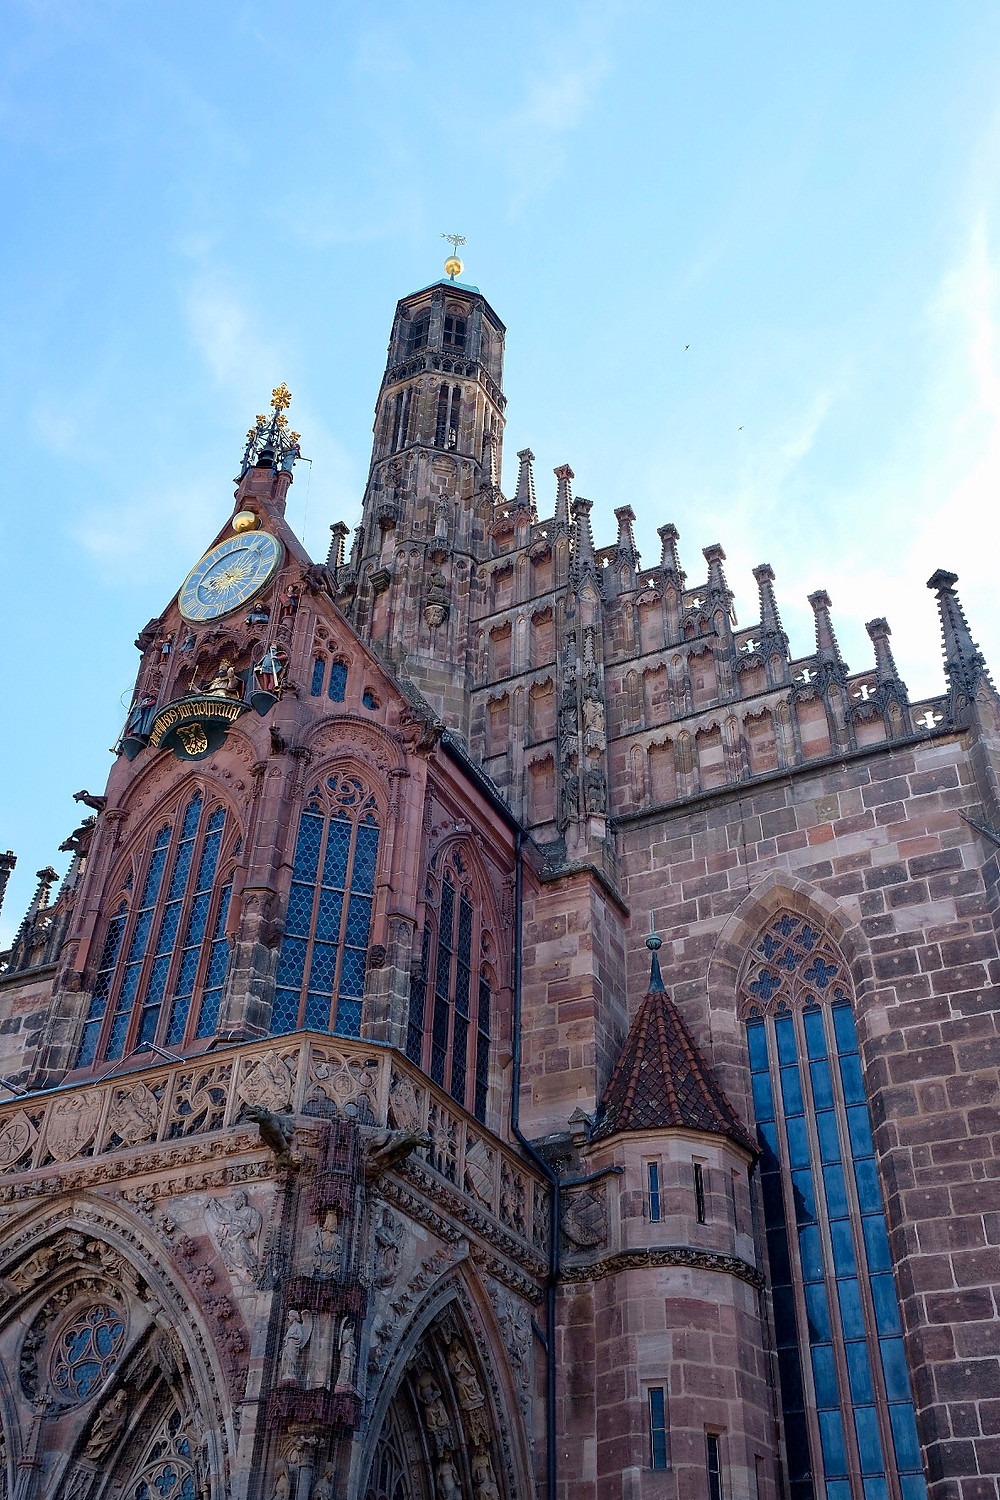 Frauenkirche (The Church of our Lady), Nürnberg